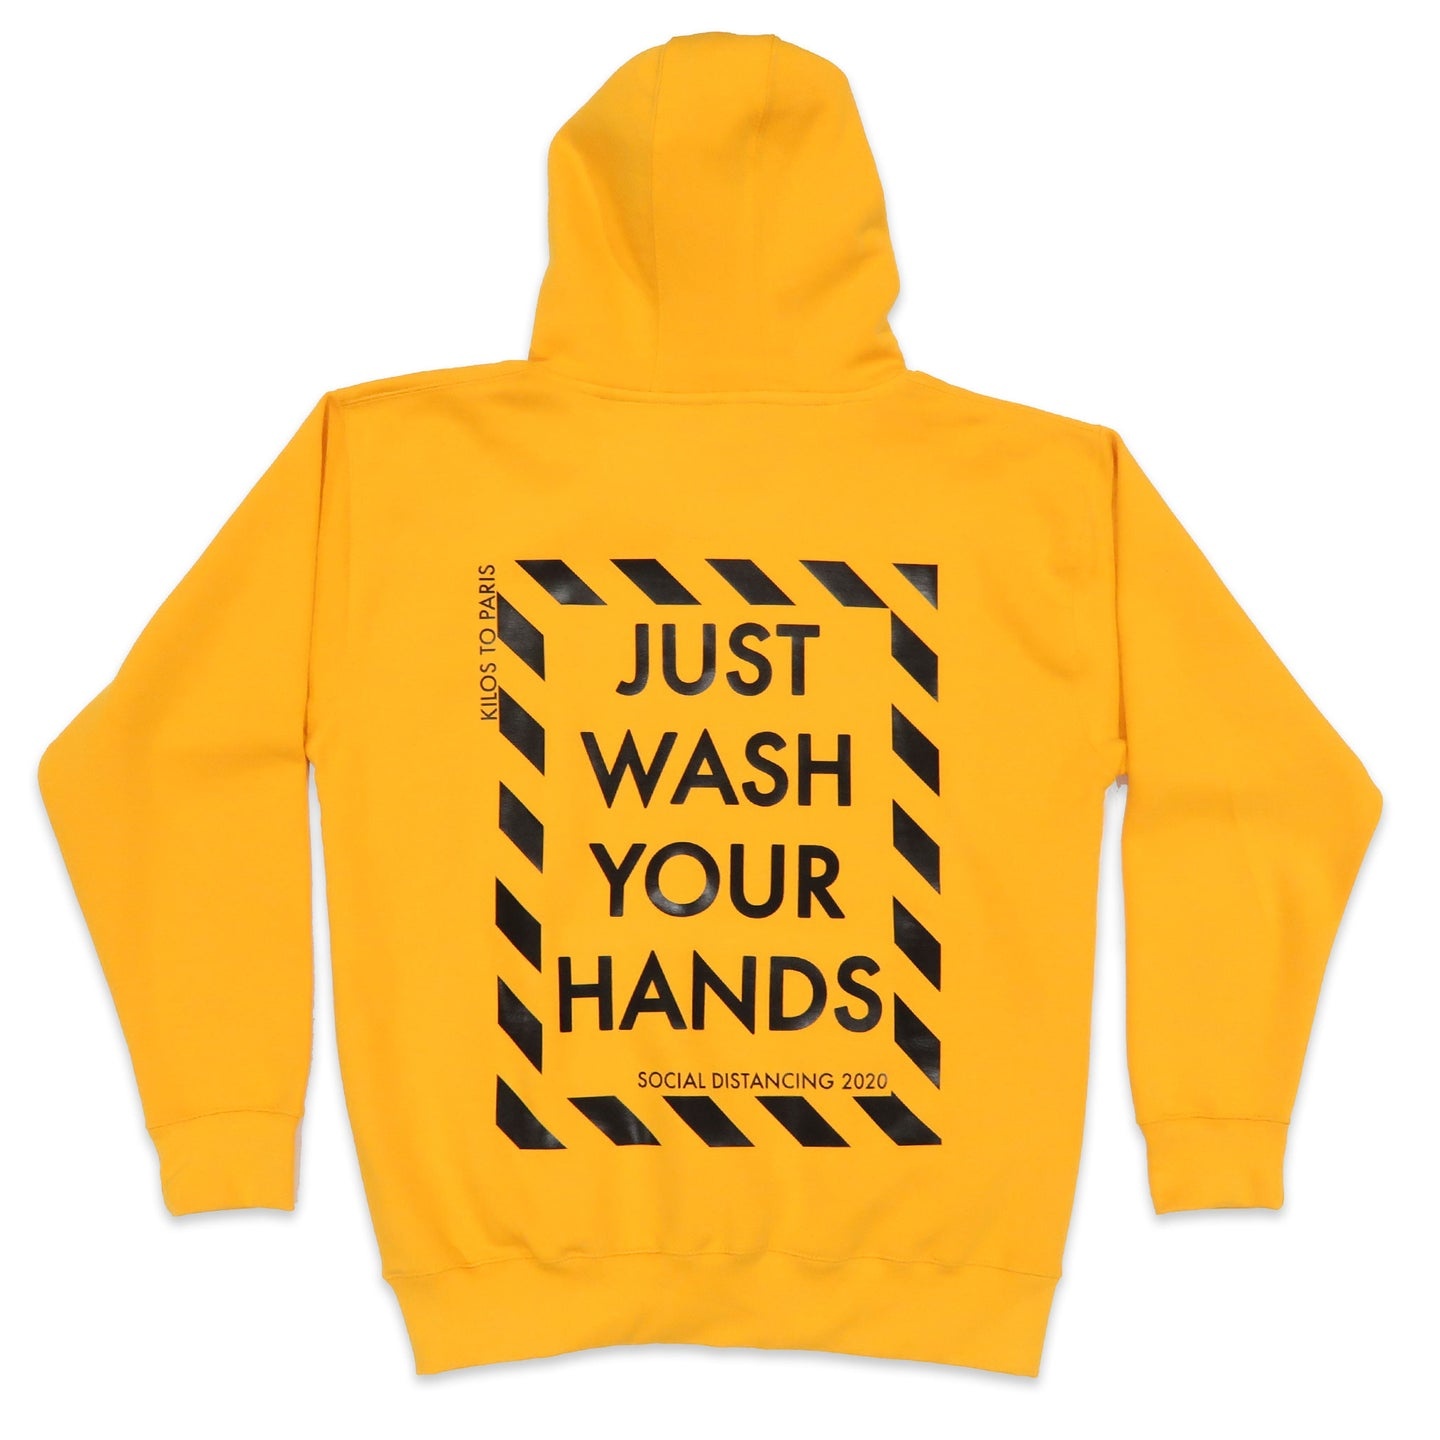 Just Wash Your Hands Hoodie in Yellow